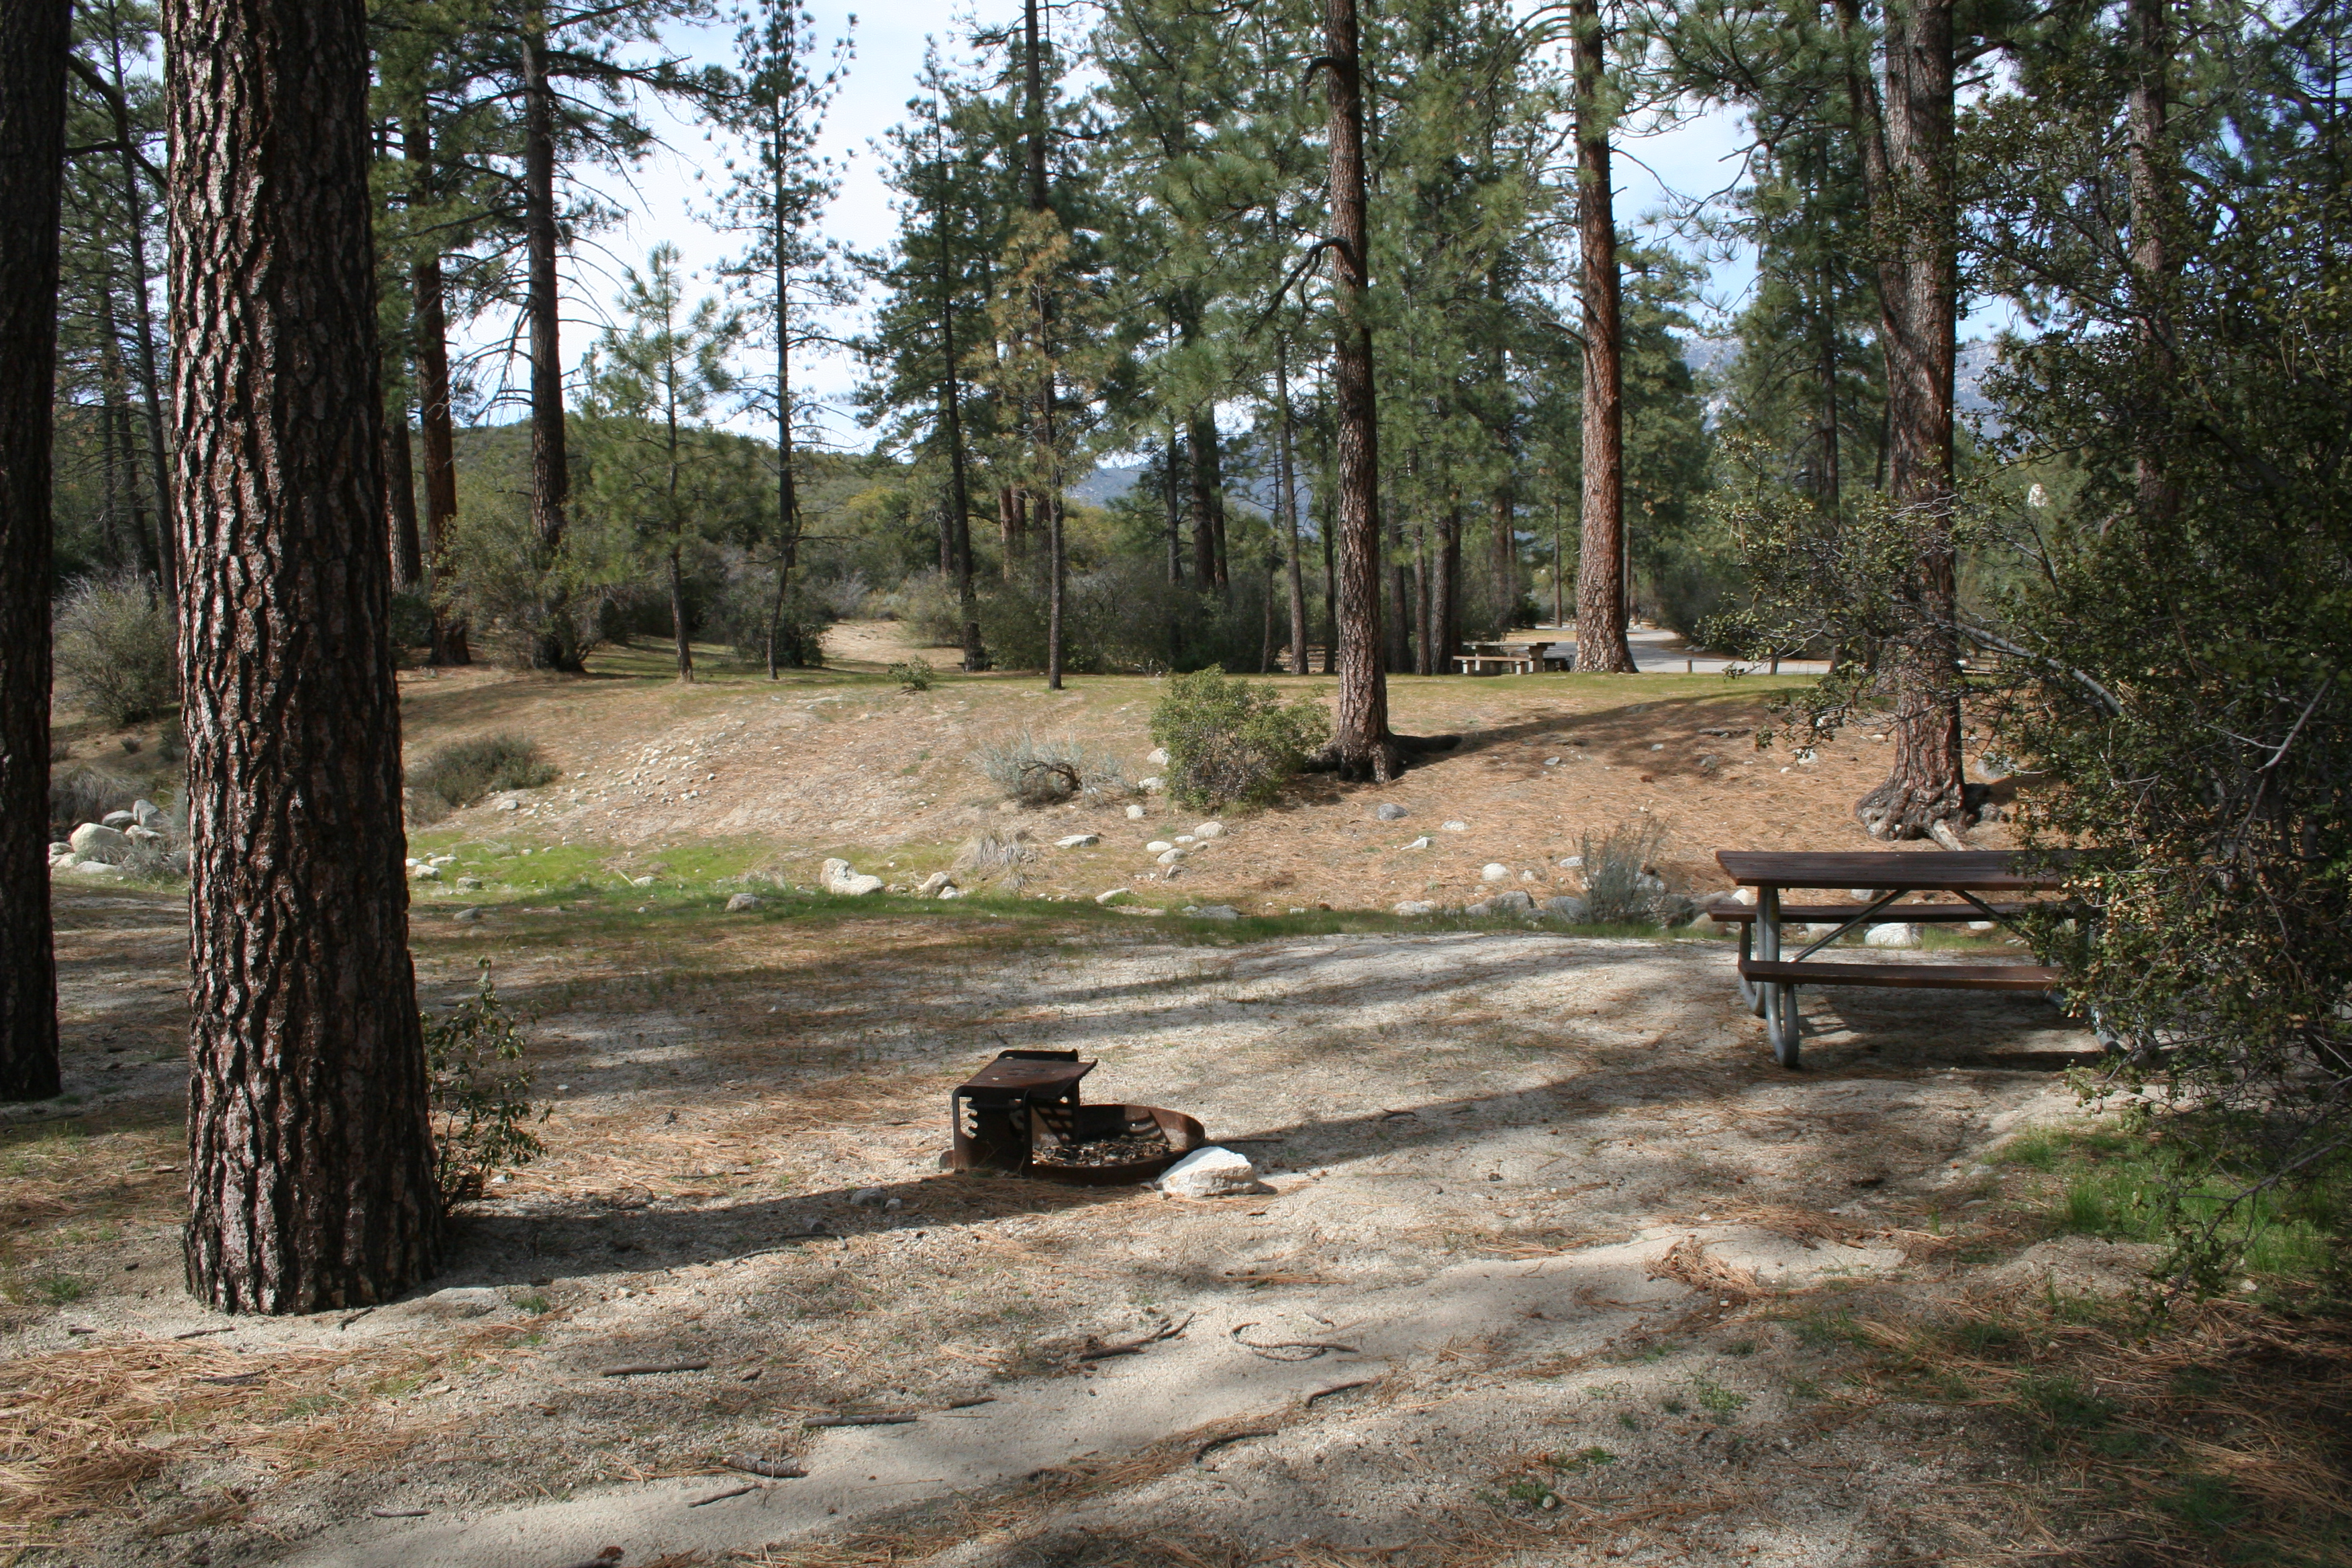 Campsite at Hurkey Creek